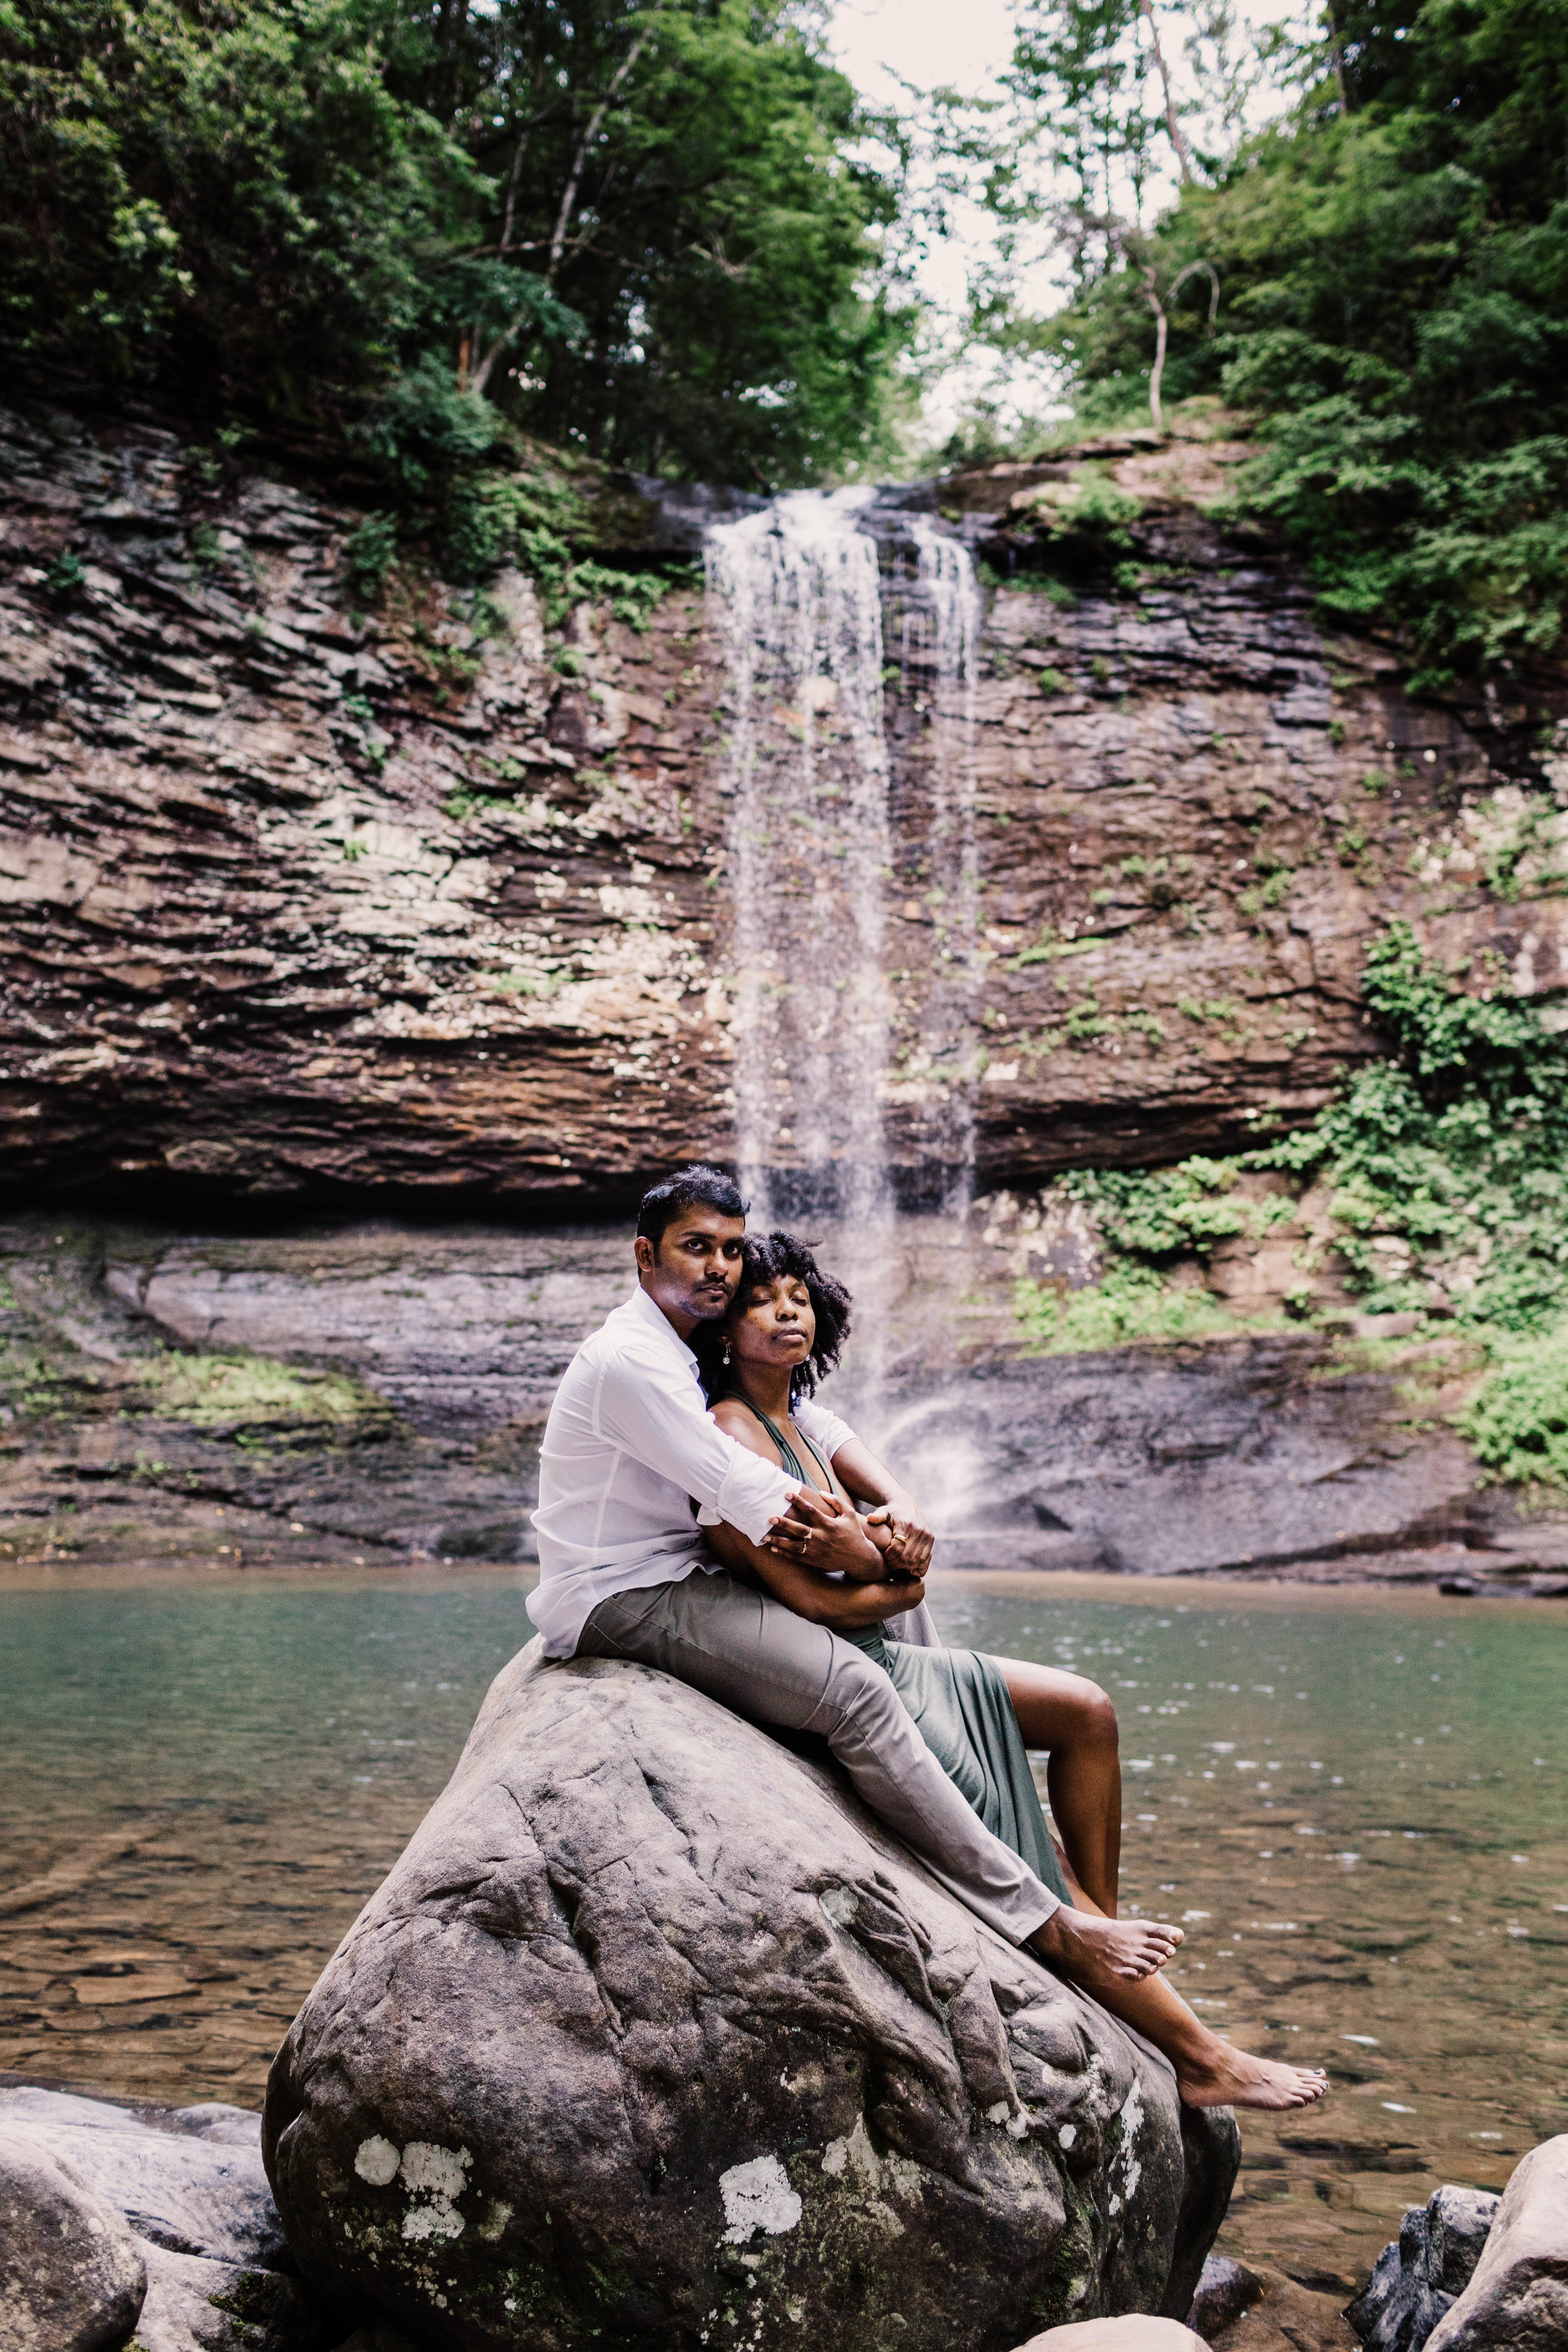 Snuggling by Waterfall Asheville Adventure Engagement | Asheville Elopement Photographer 2